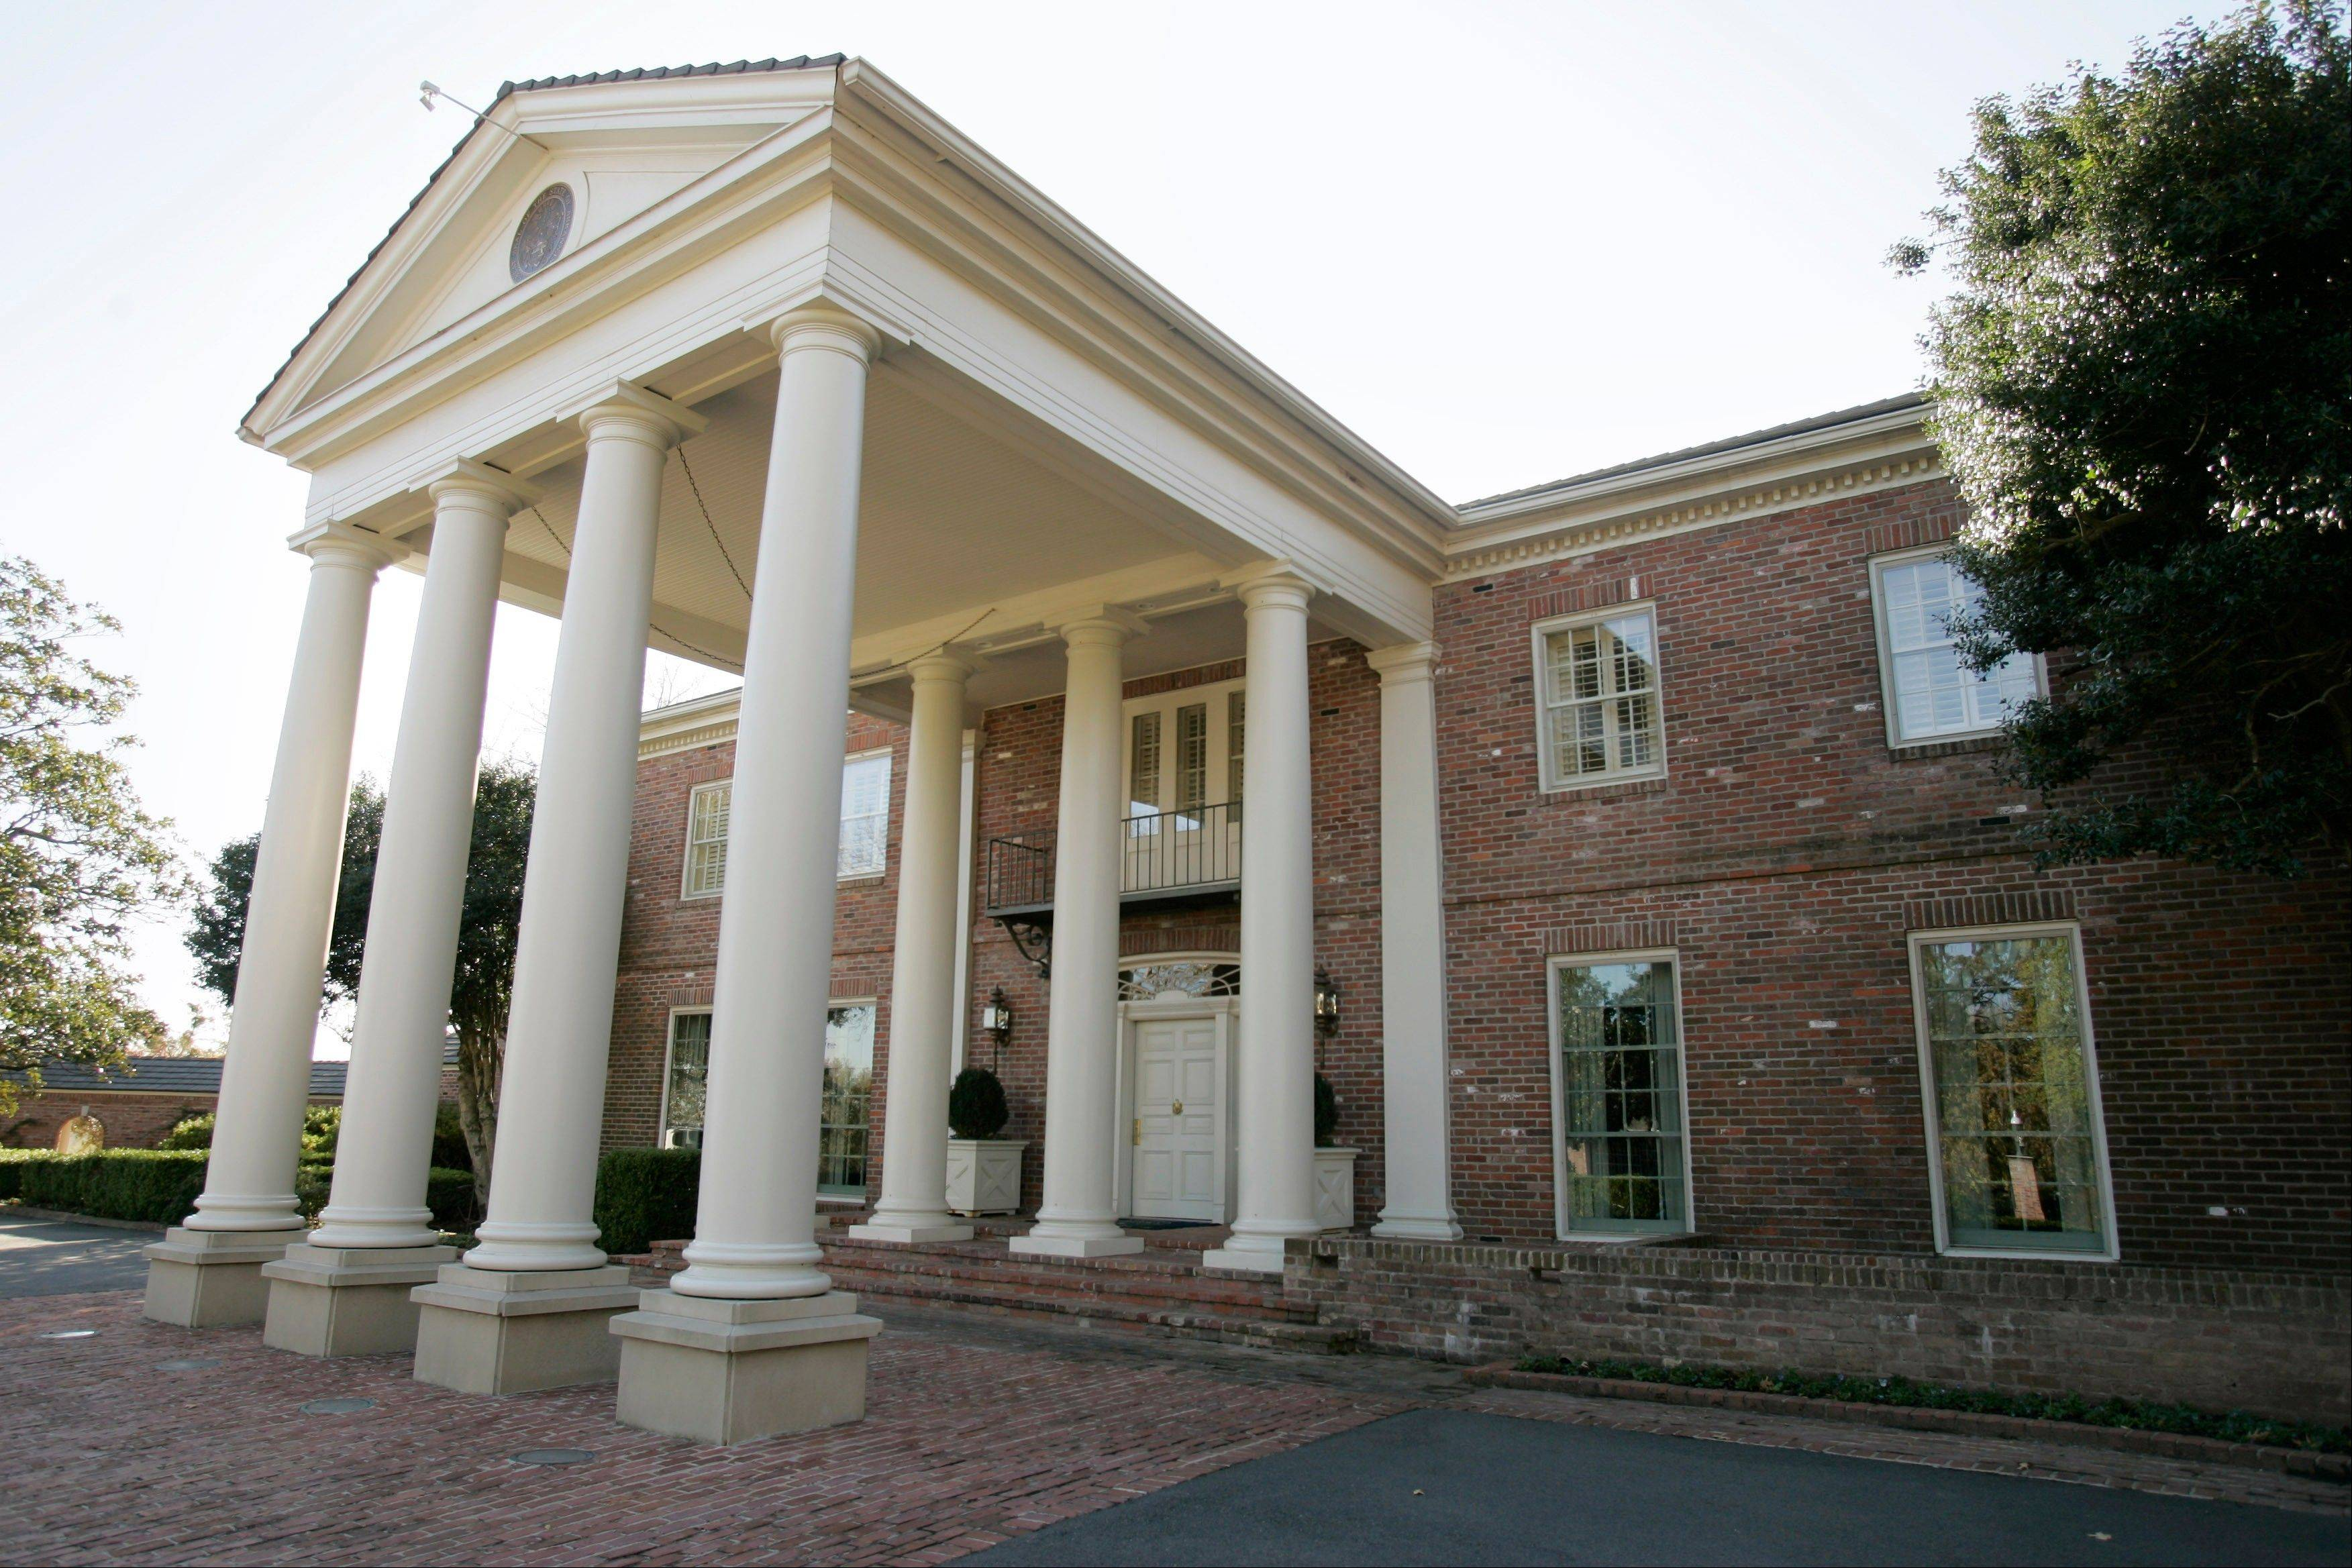 The Arkansas Governor�s Mansion, where Bill and Hillary Clinton lived before he became president, offers free tours by reservation.